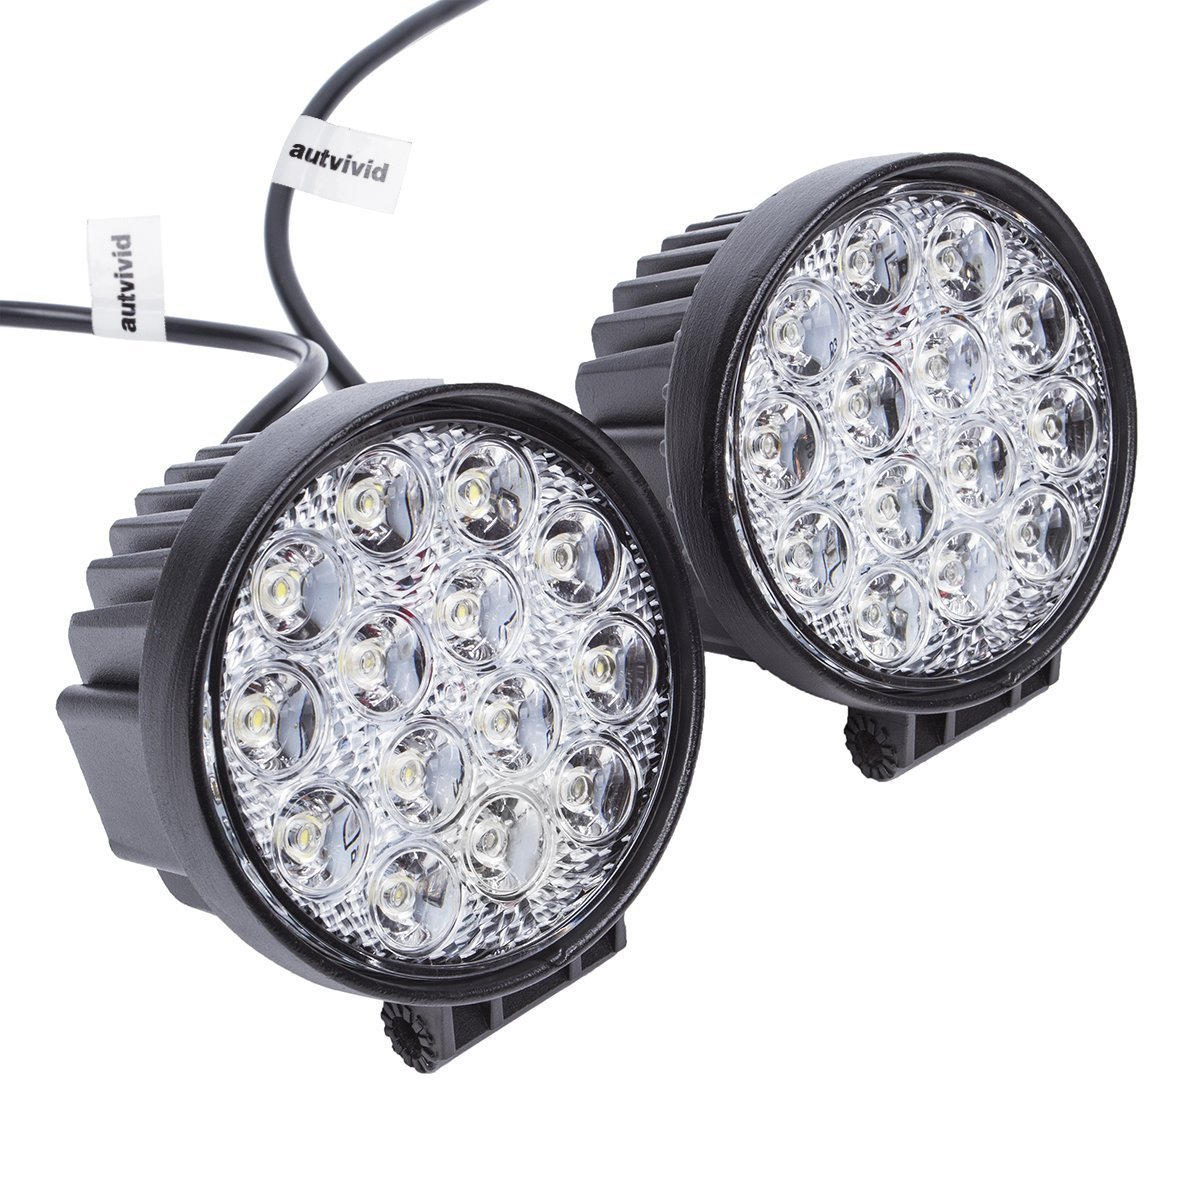 Dual 27W Heavy Duty Flood Lights For Outdoors and Emergency Lighting